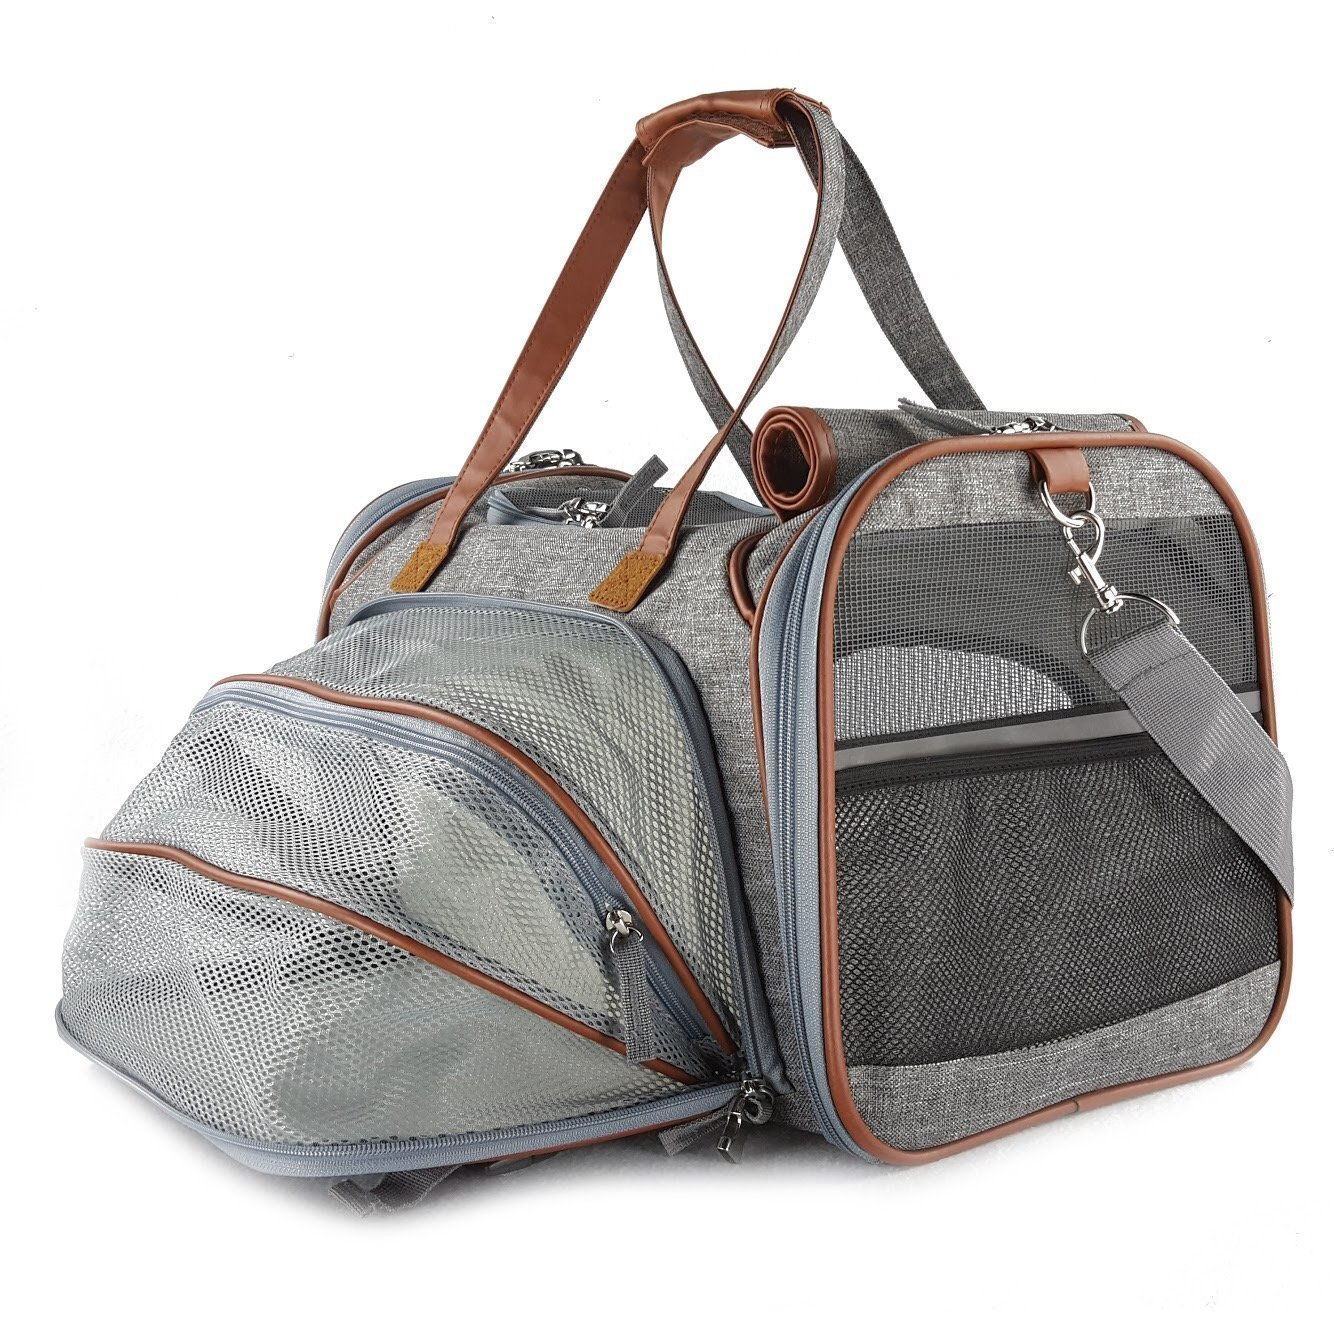 HOLIDAY SALE!Petratronics Pet carrier Bag Waterproof Expandable Airline Approved Soft Sided Pet Carrier by INDUS TRADING with Fleece Pad, Premium Zippers, Under Seat Compatibility, for Cats, Small Dog